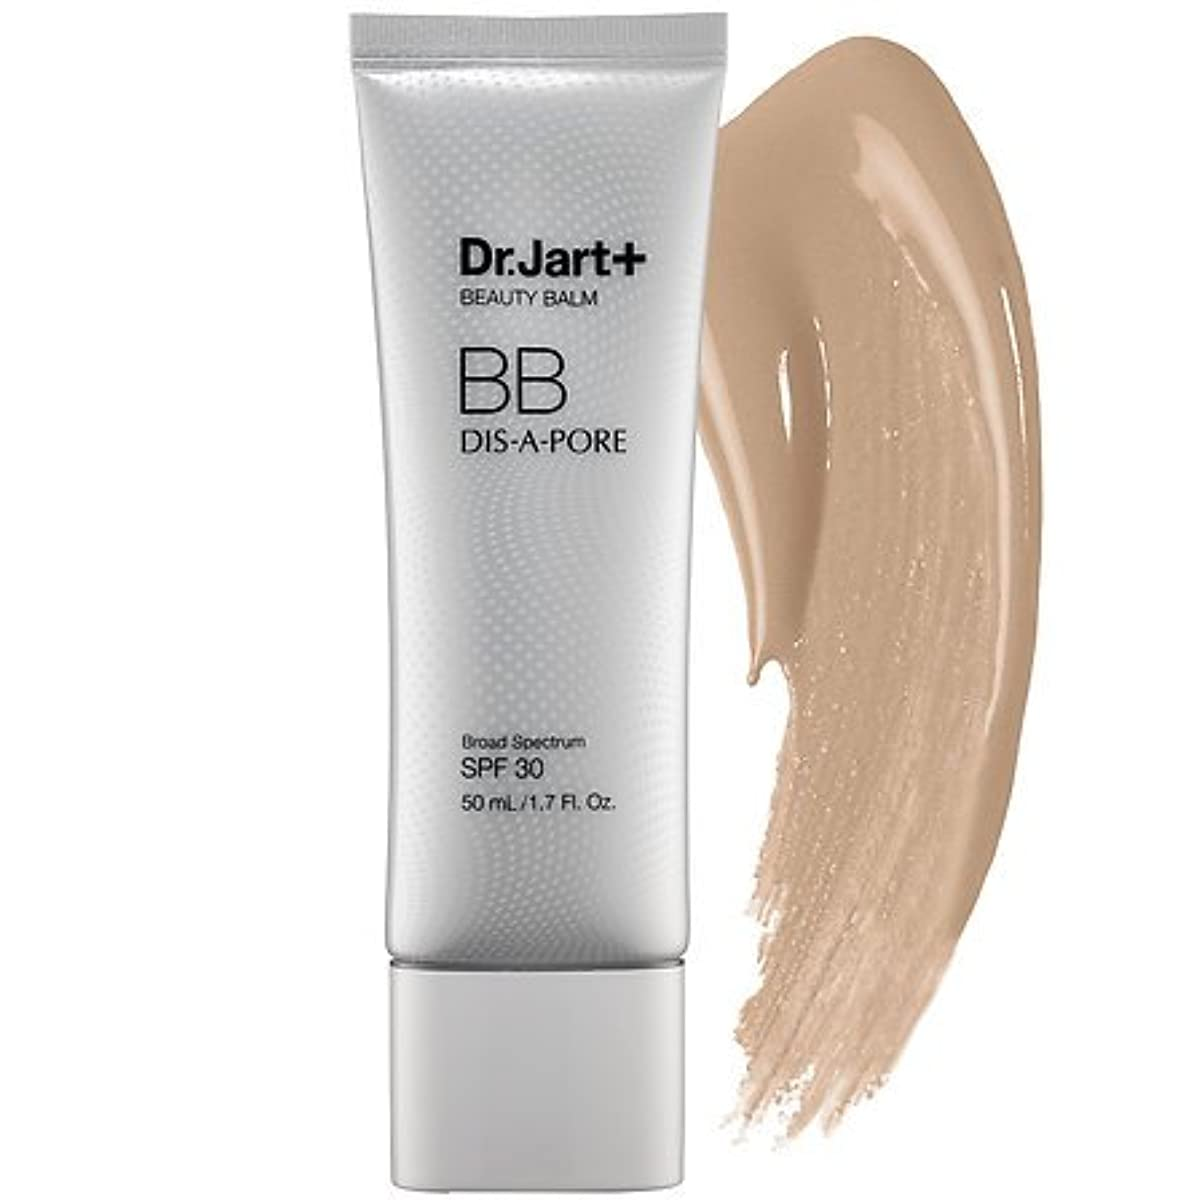 カラス無駄に肘掛け椅子Dr.Jart+ Dis-A-Pore Beauty Balm SPF30_1.7oz [02 Medium-Deep] …